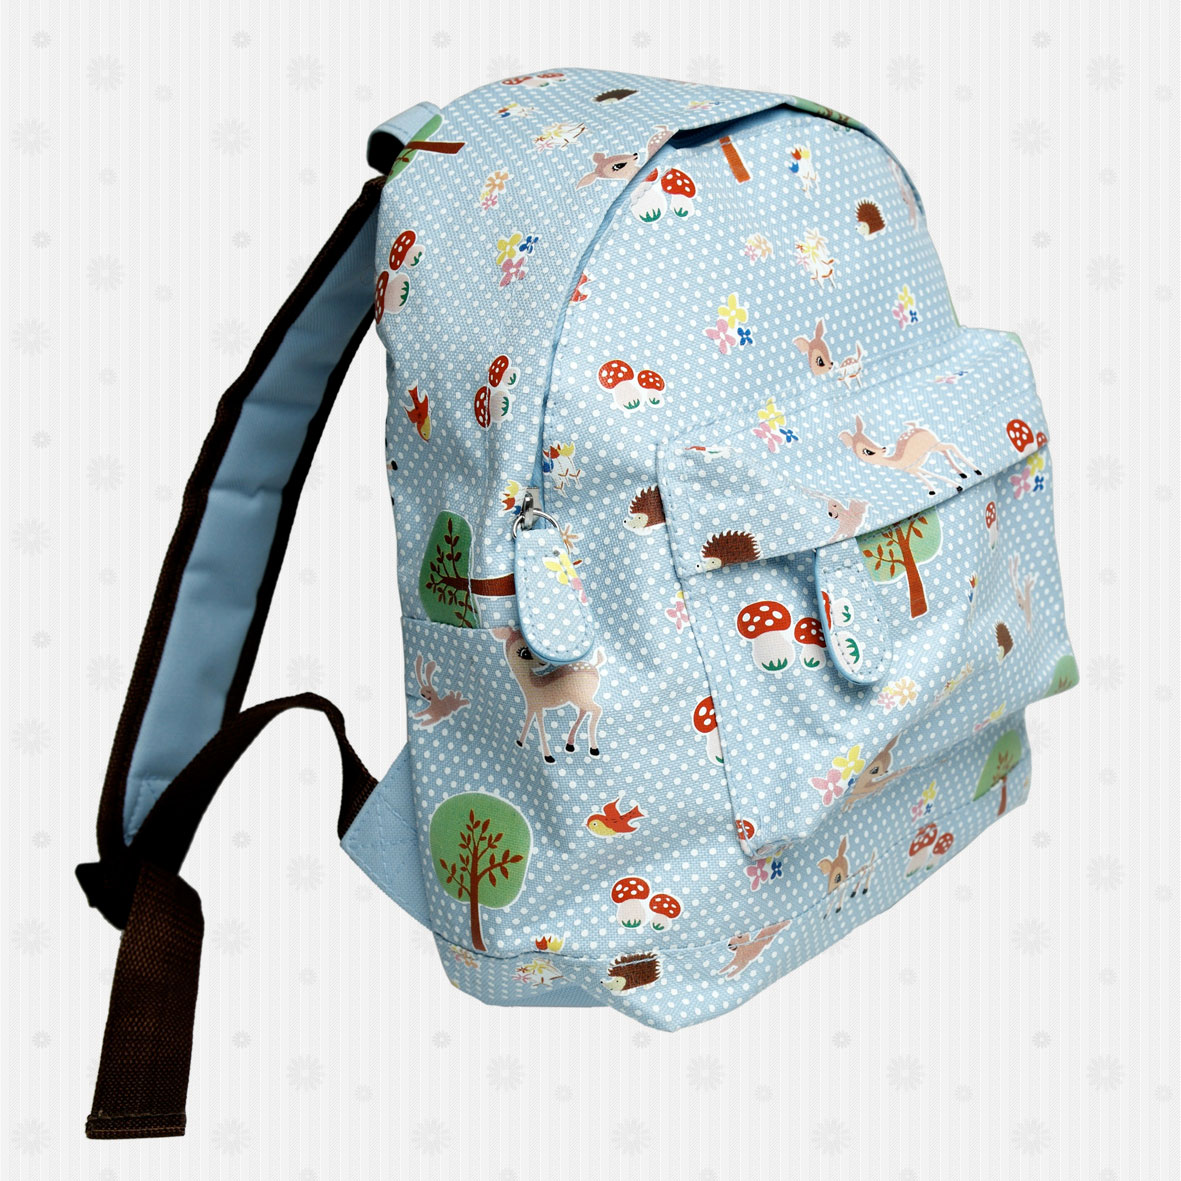 Cute Childrens Backpacks E43iCAq9